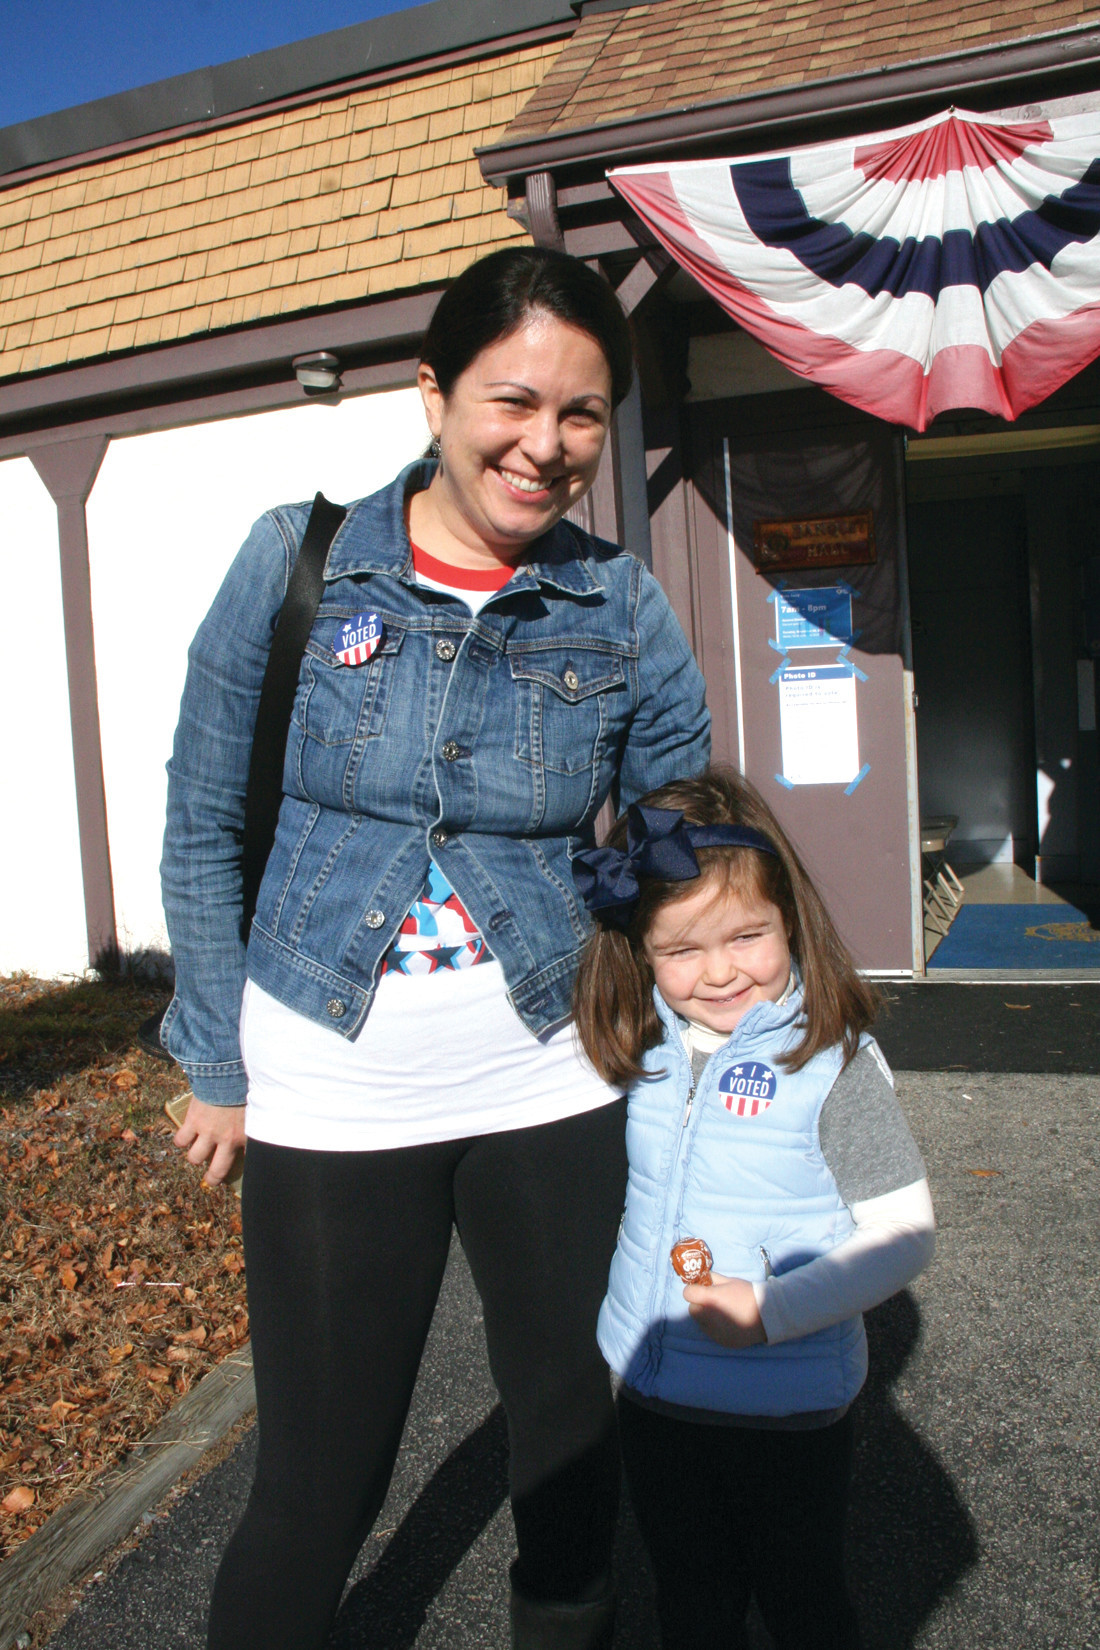 MOM'S HELPER: Julia Gabarra accompanied her mother, Amy, to the polls and shared smiles.